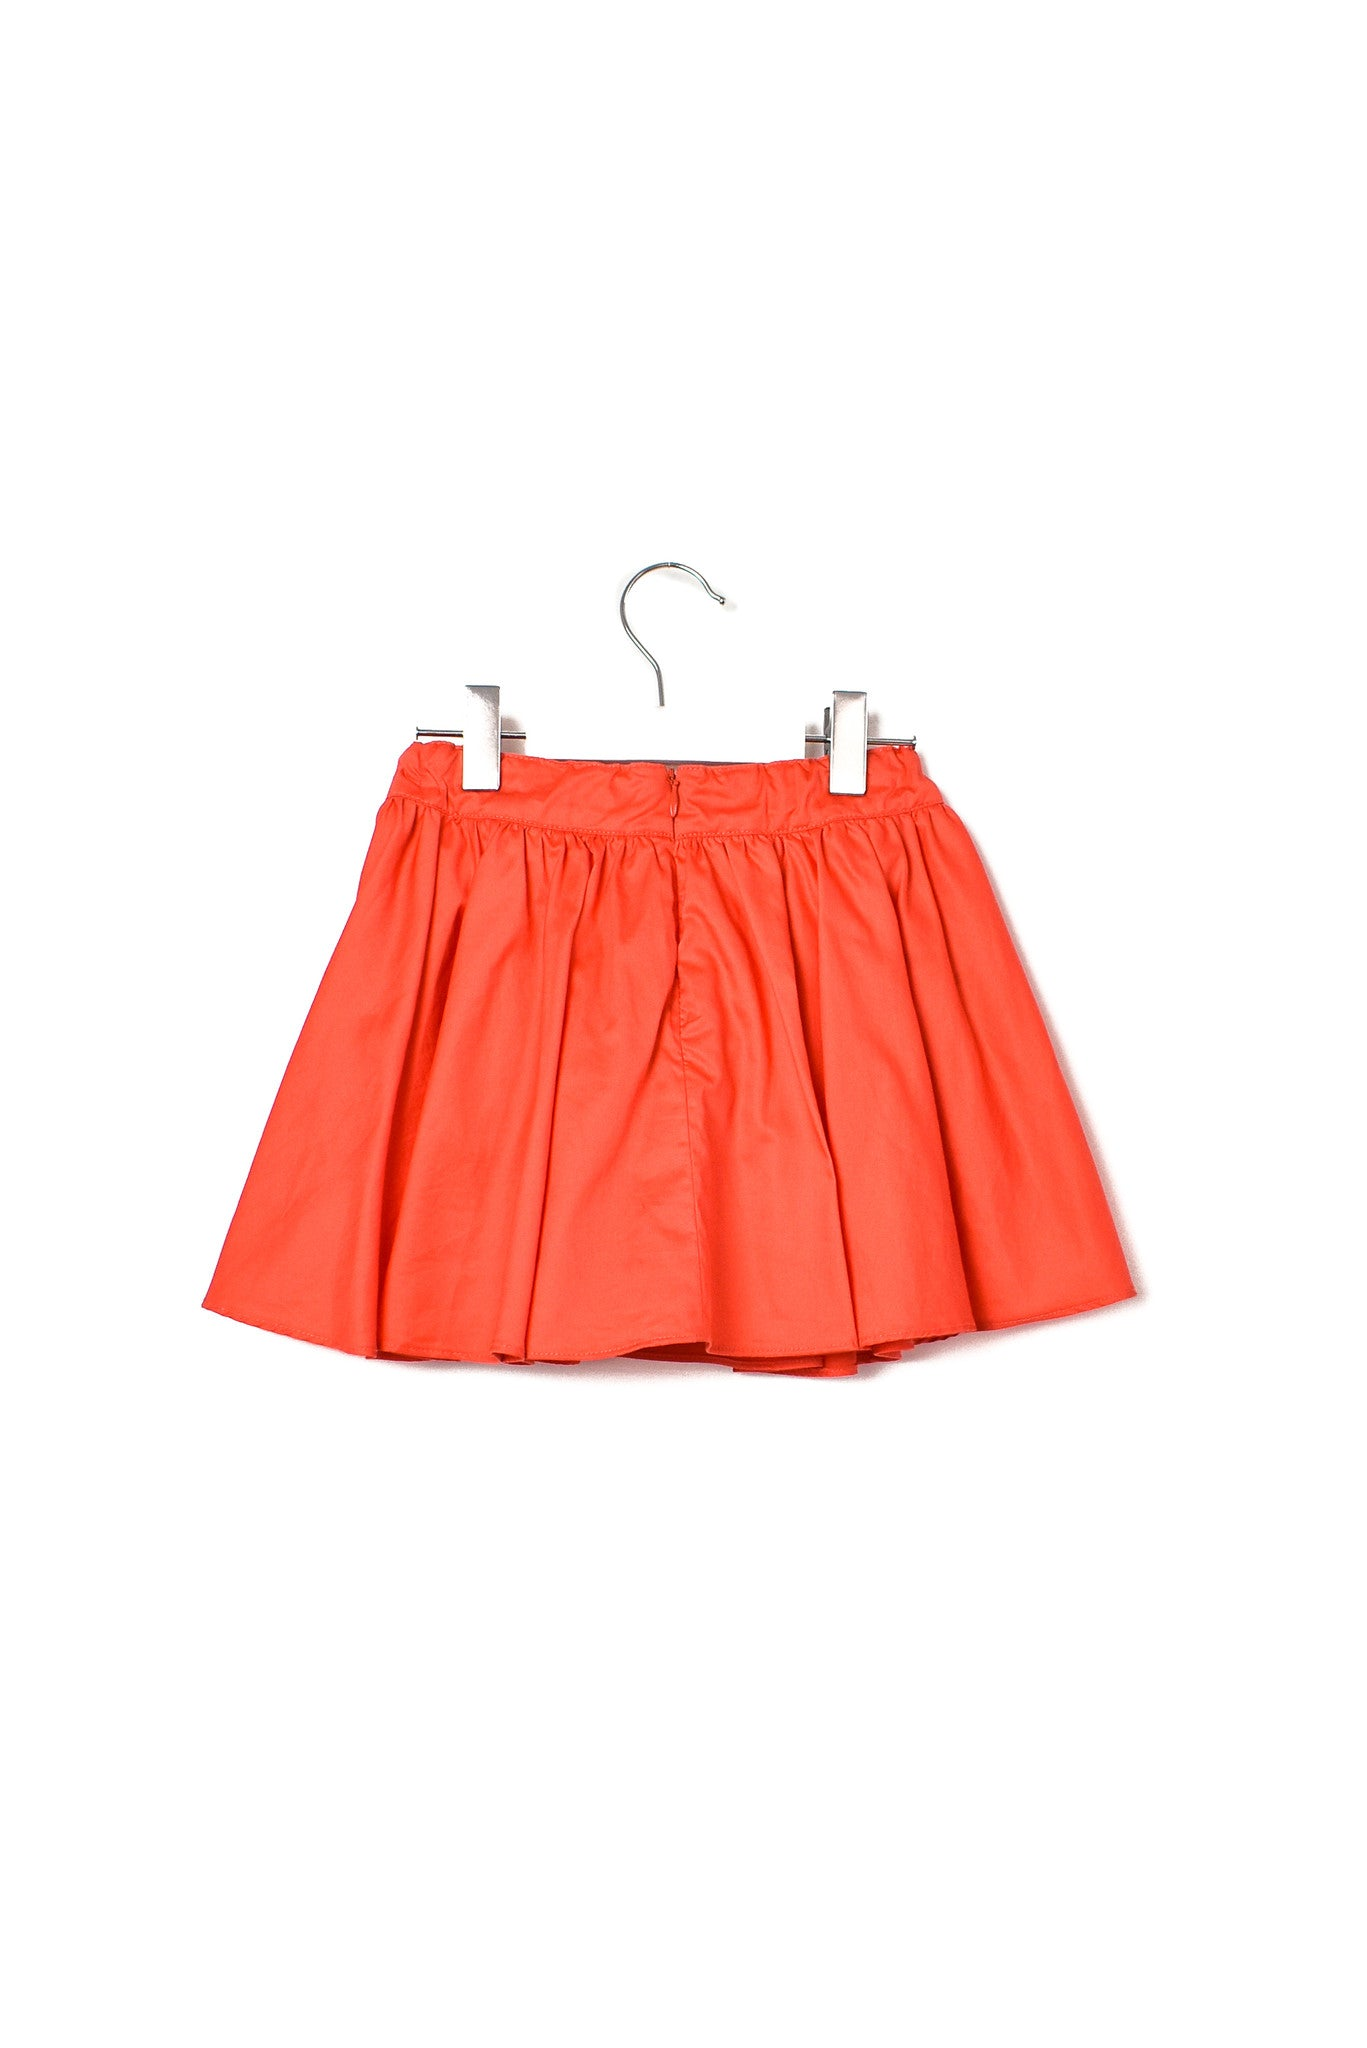 10003496 Seed Kids~Skirt 5T at Retykle